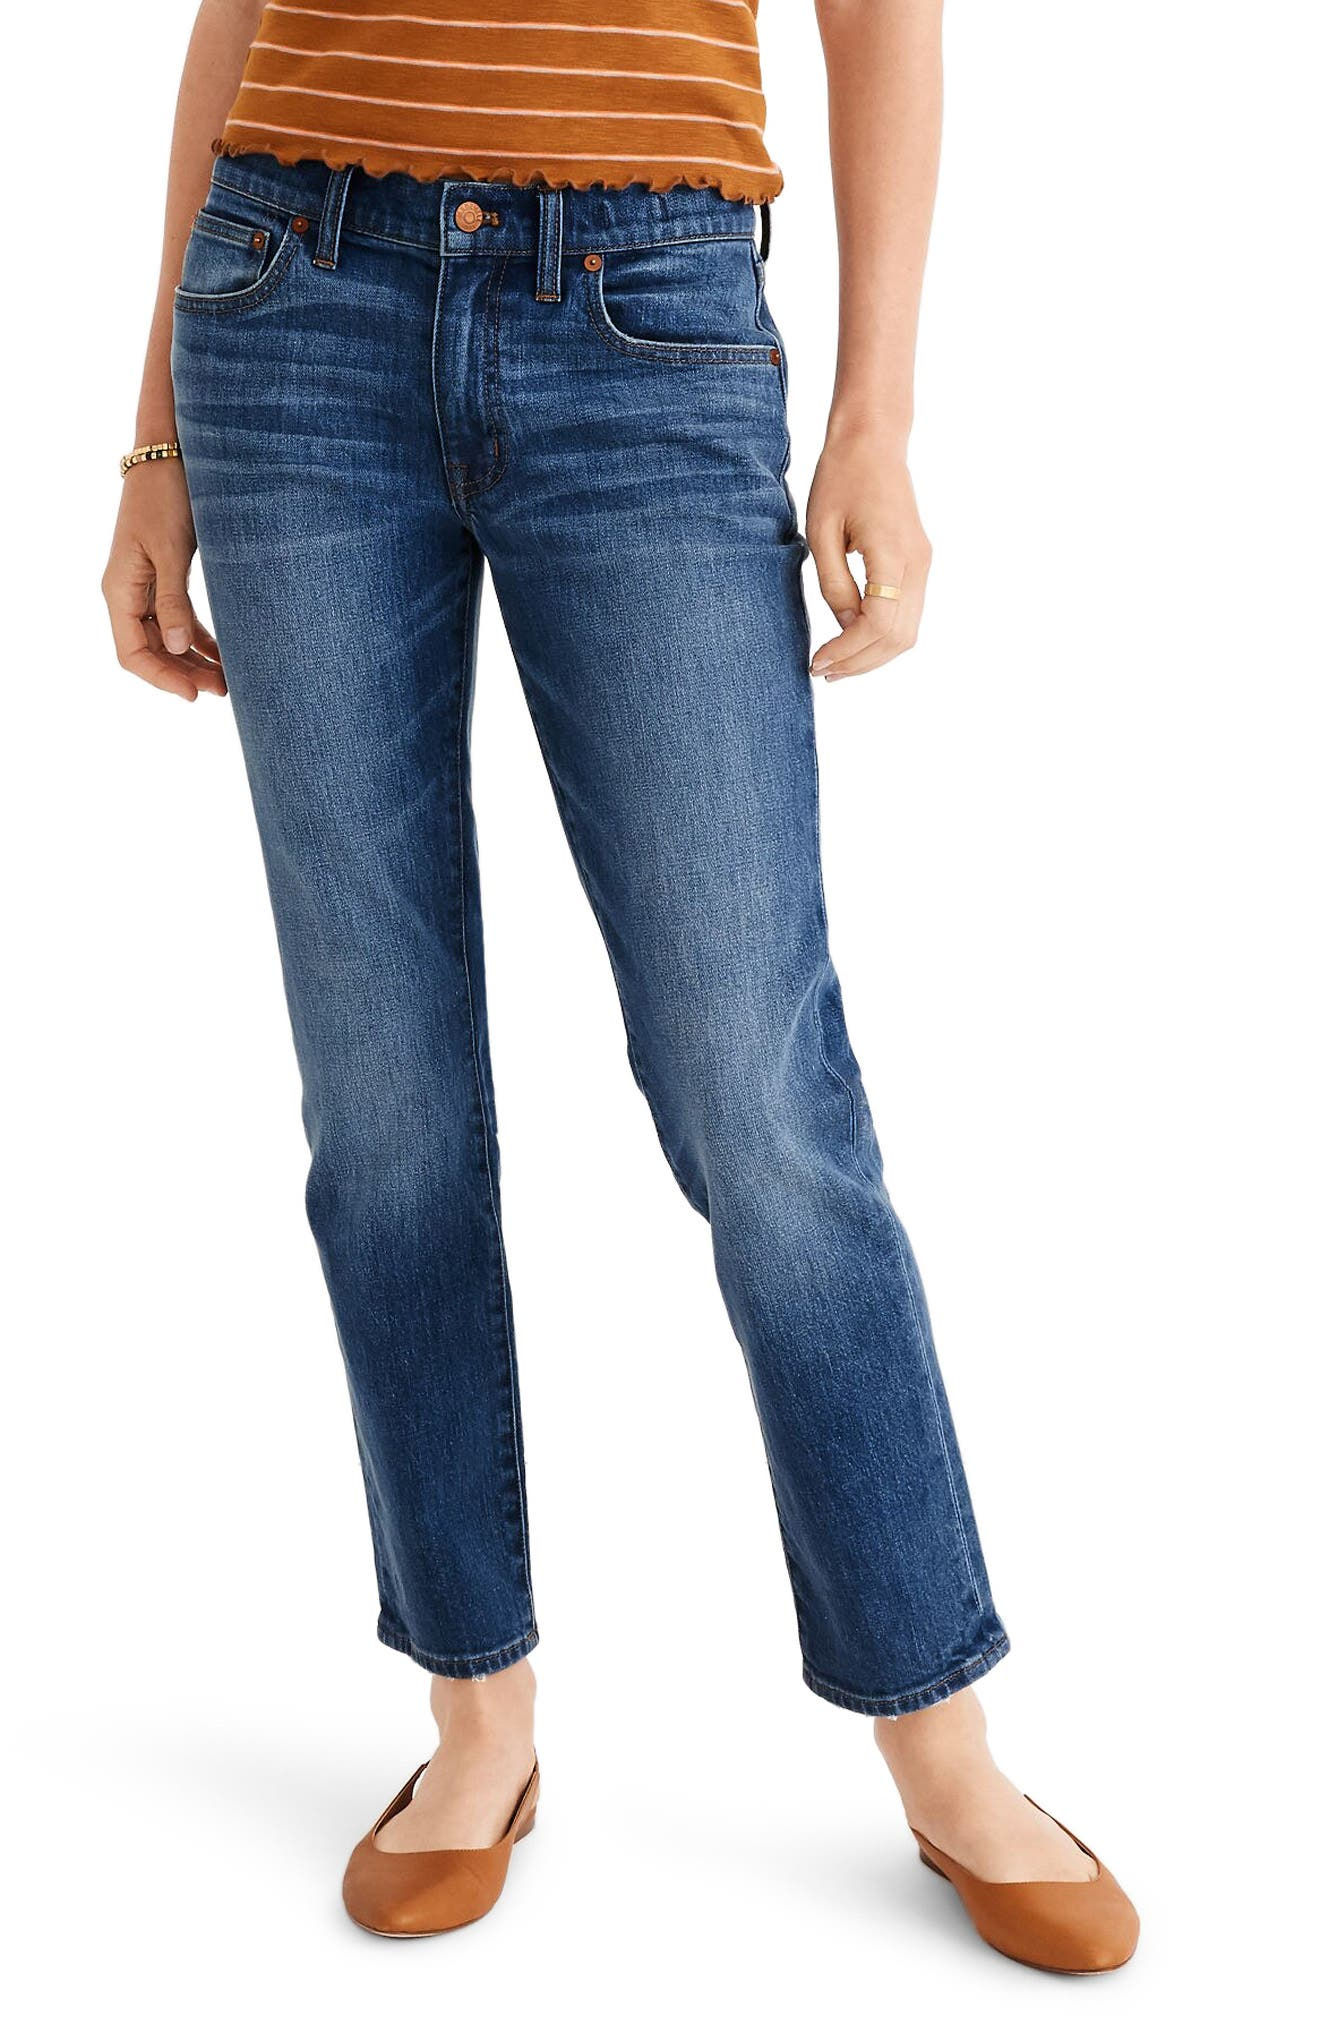 Madewell The Slim Boyfriend Jeans (Everglade Wash)